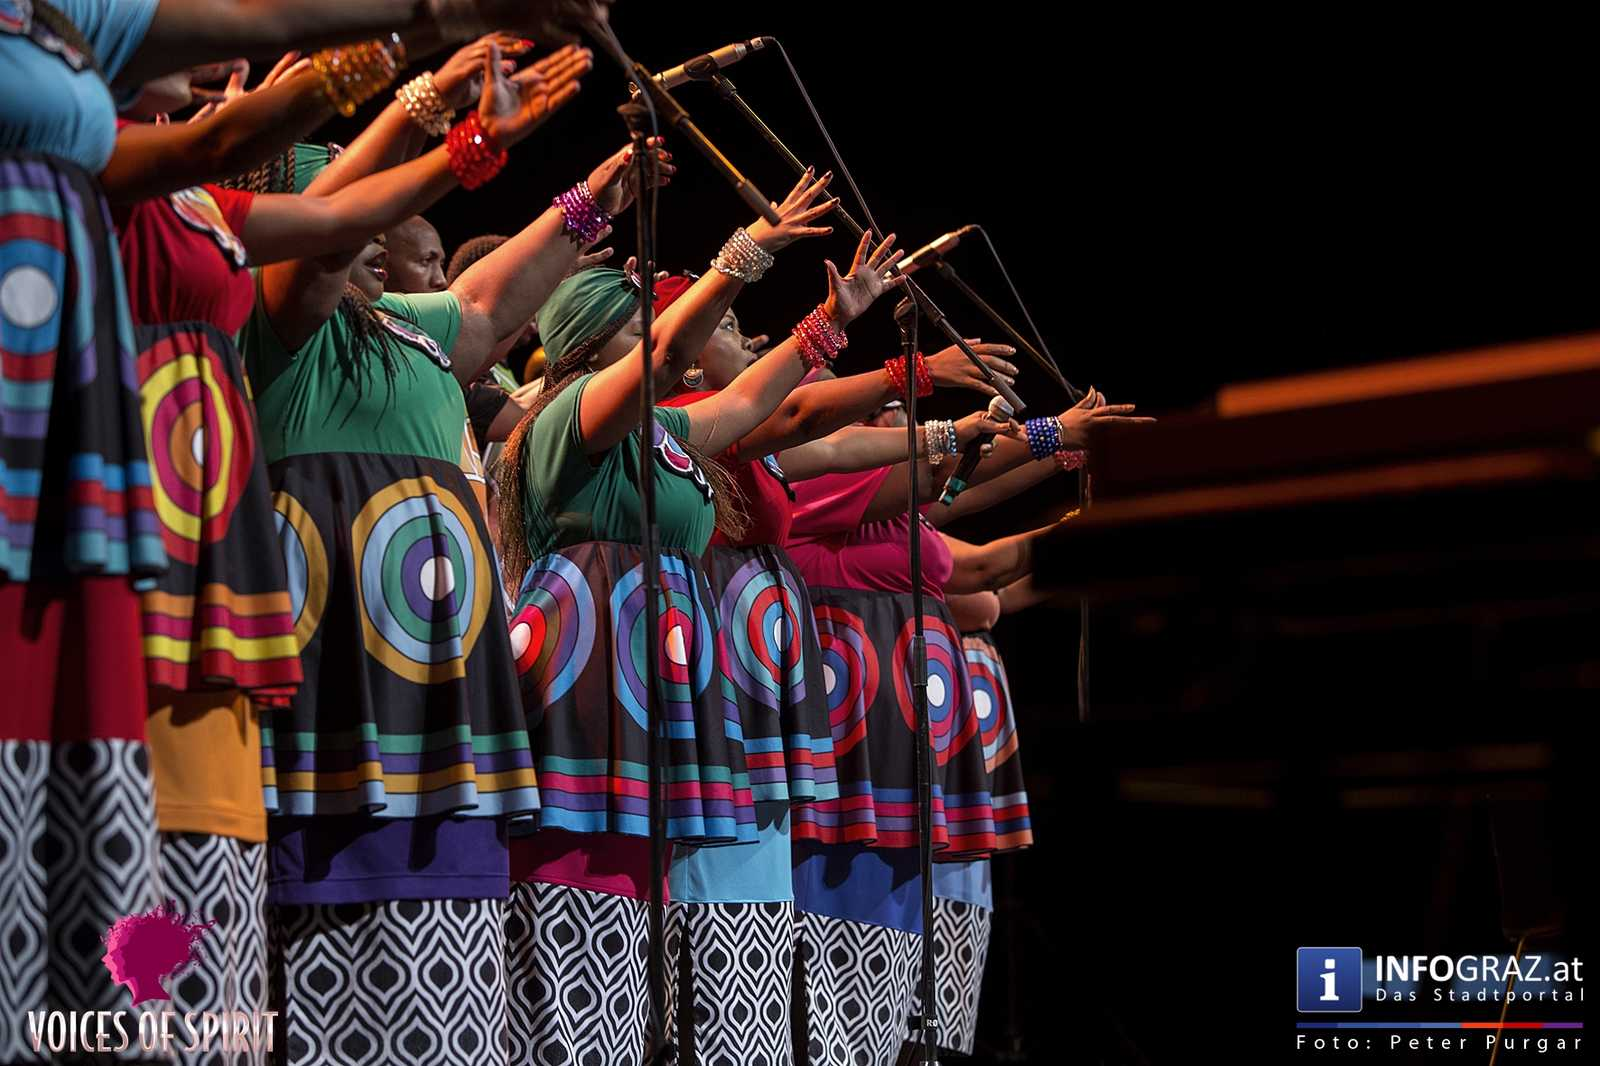 soweto gospel choir internationales chorfestival statdthalle graz voices of spirit eroeffnung festivals 2016 007